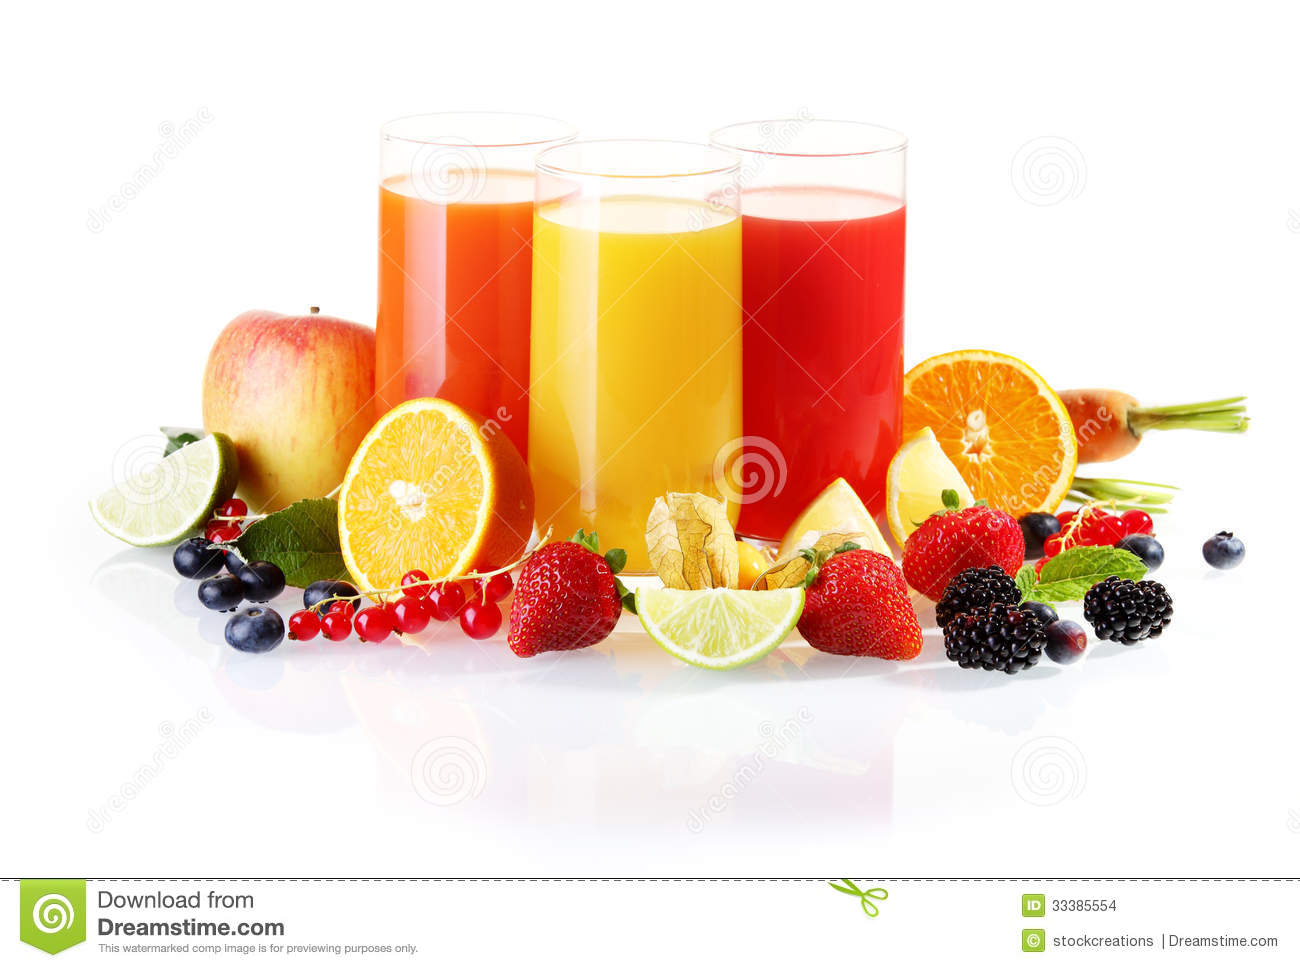 Dissertation on fresh fruits